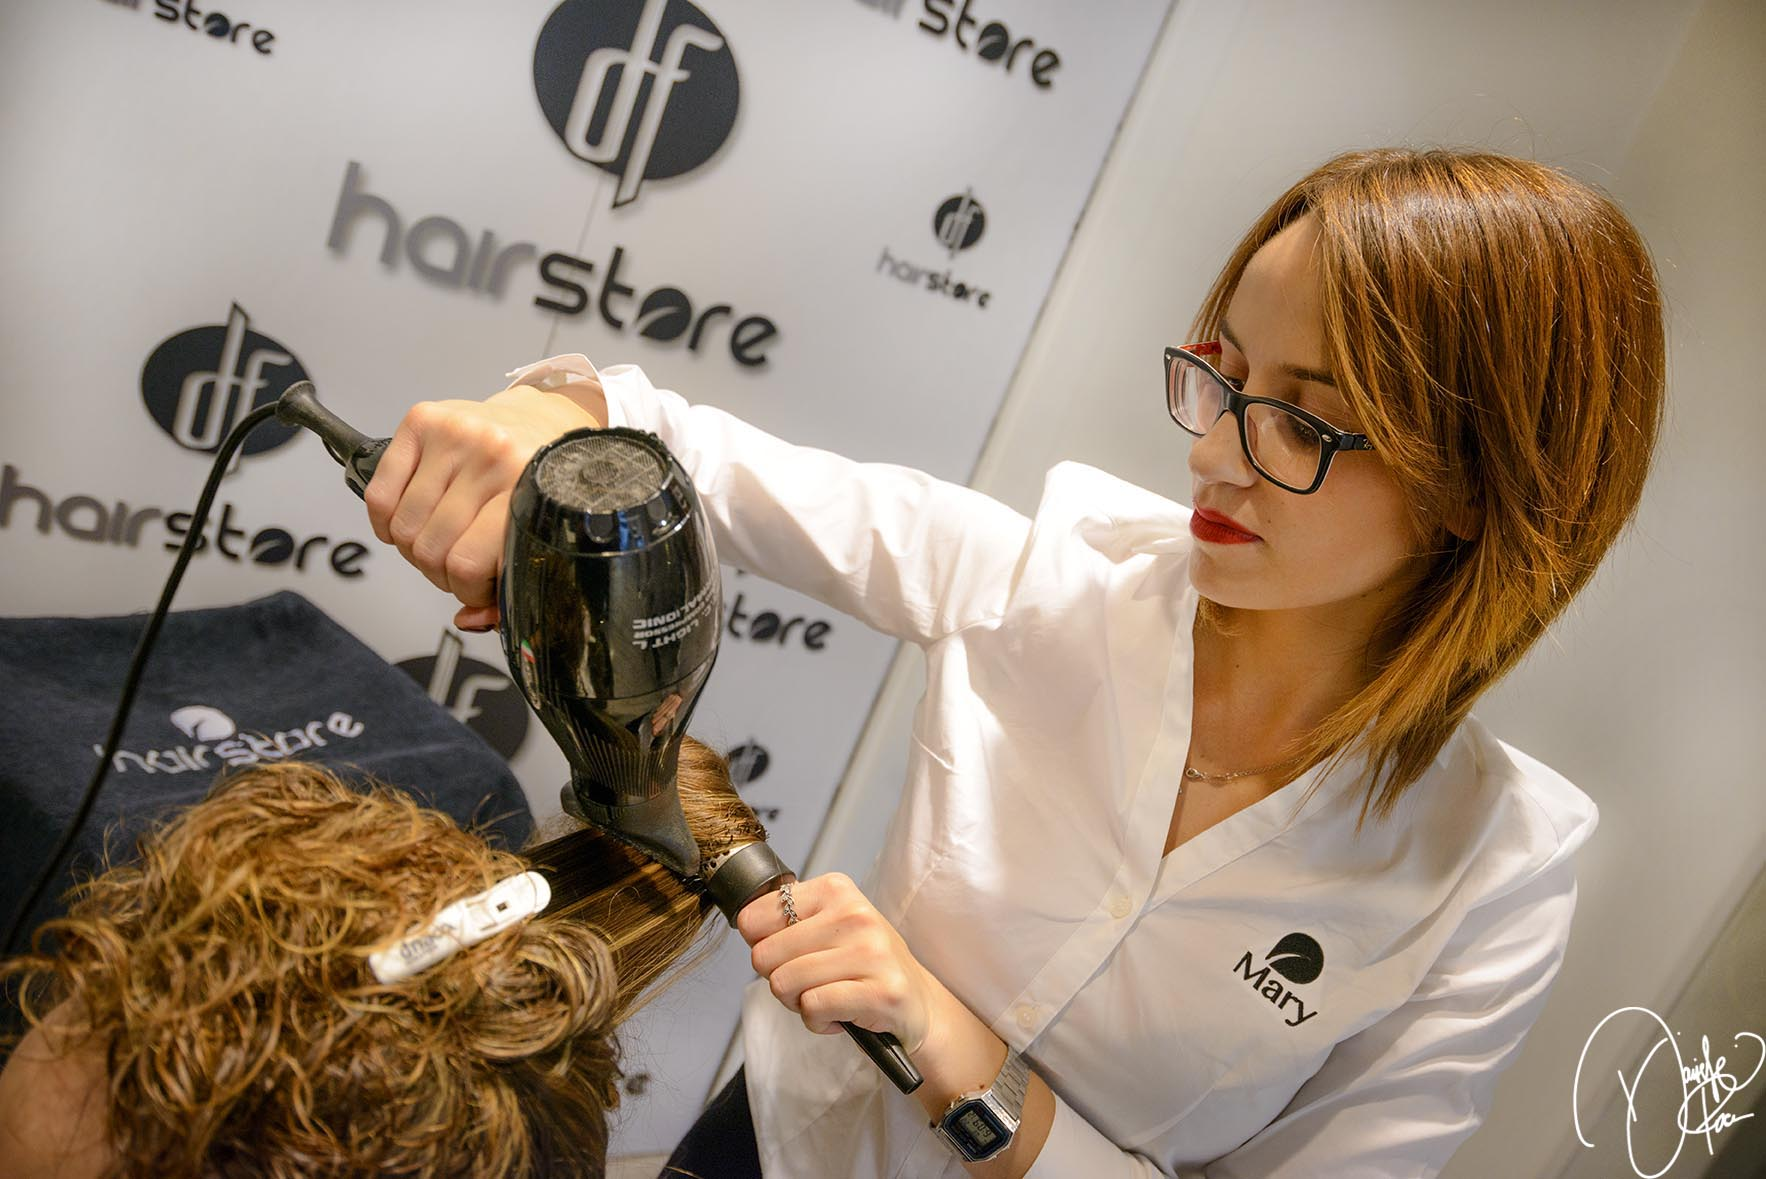 dfhairstore